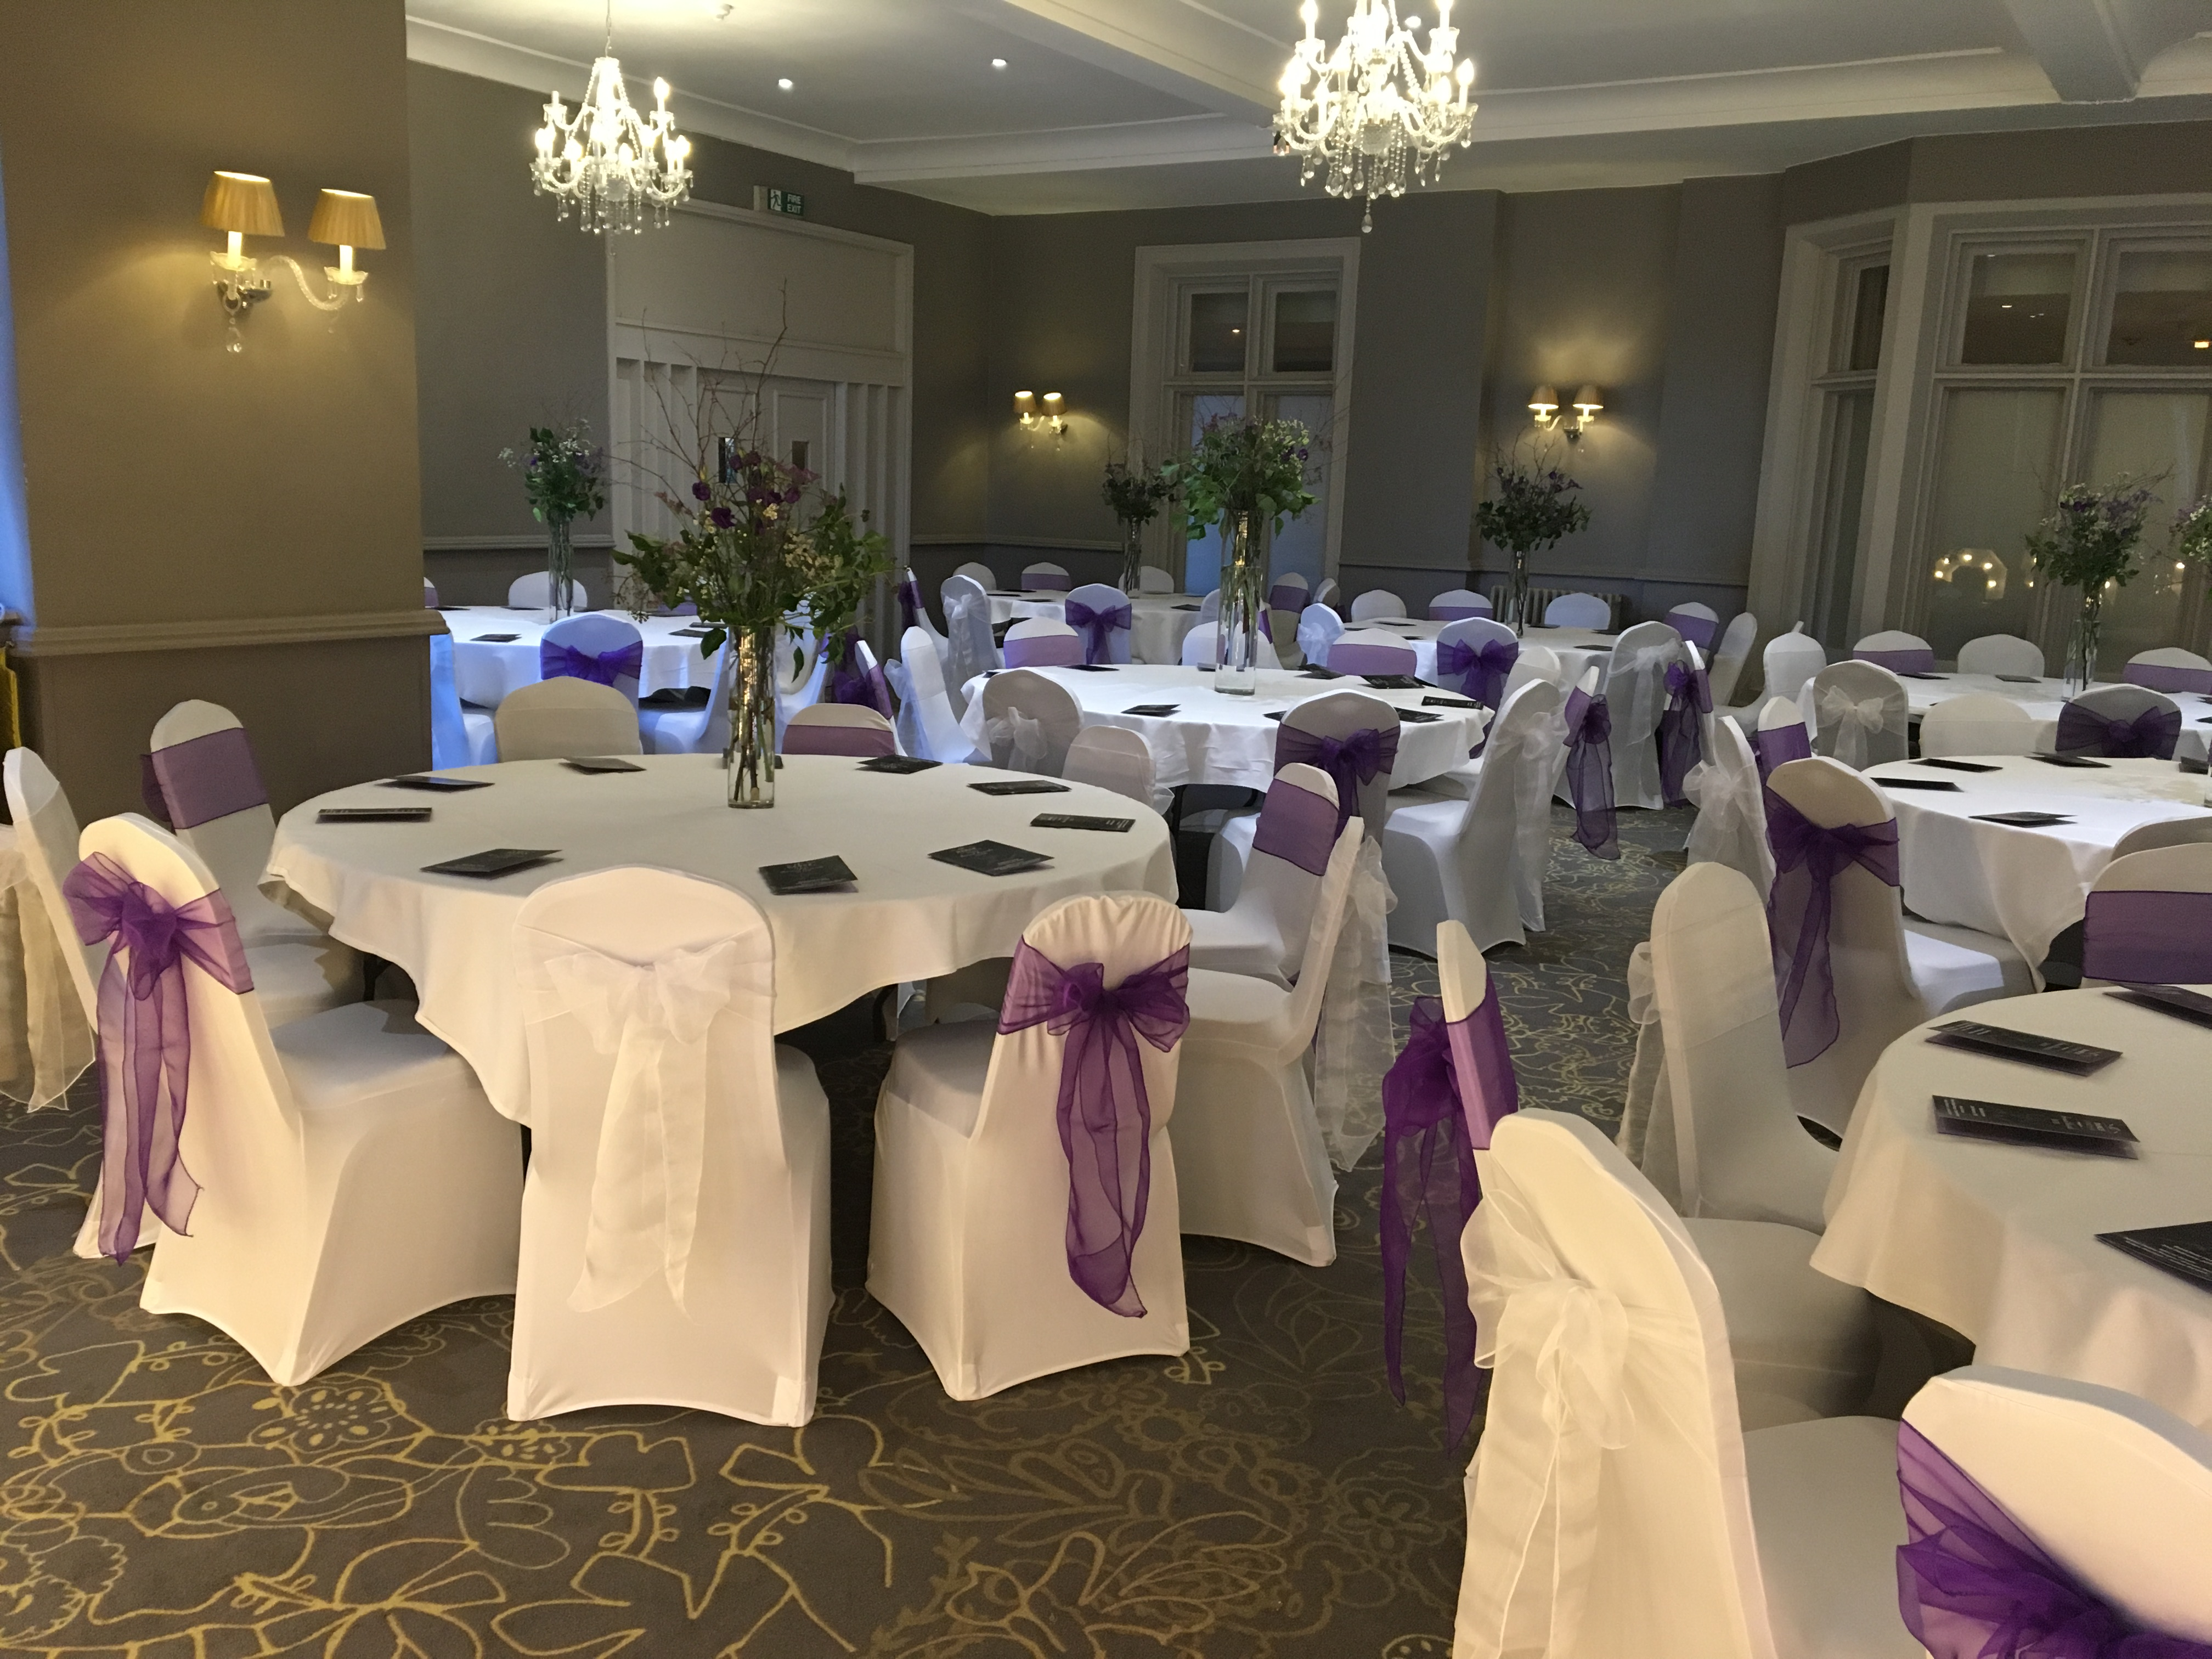 White chair covers with white and cadbury purple sashes for awards ceremony, Bankfield Hotel, Bradford